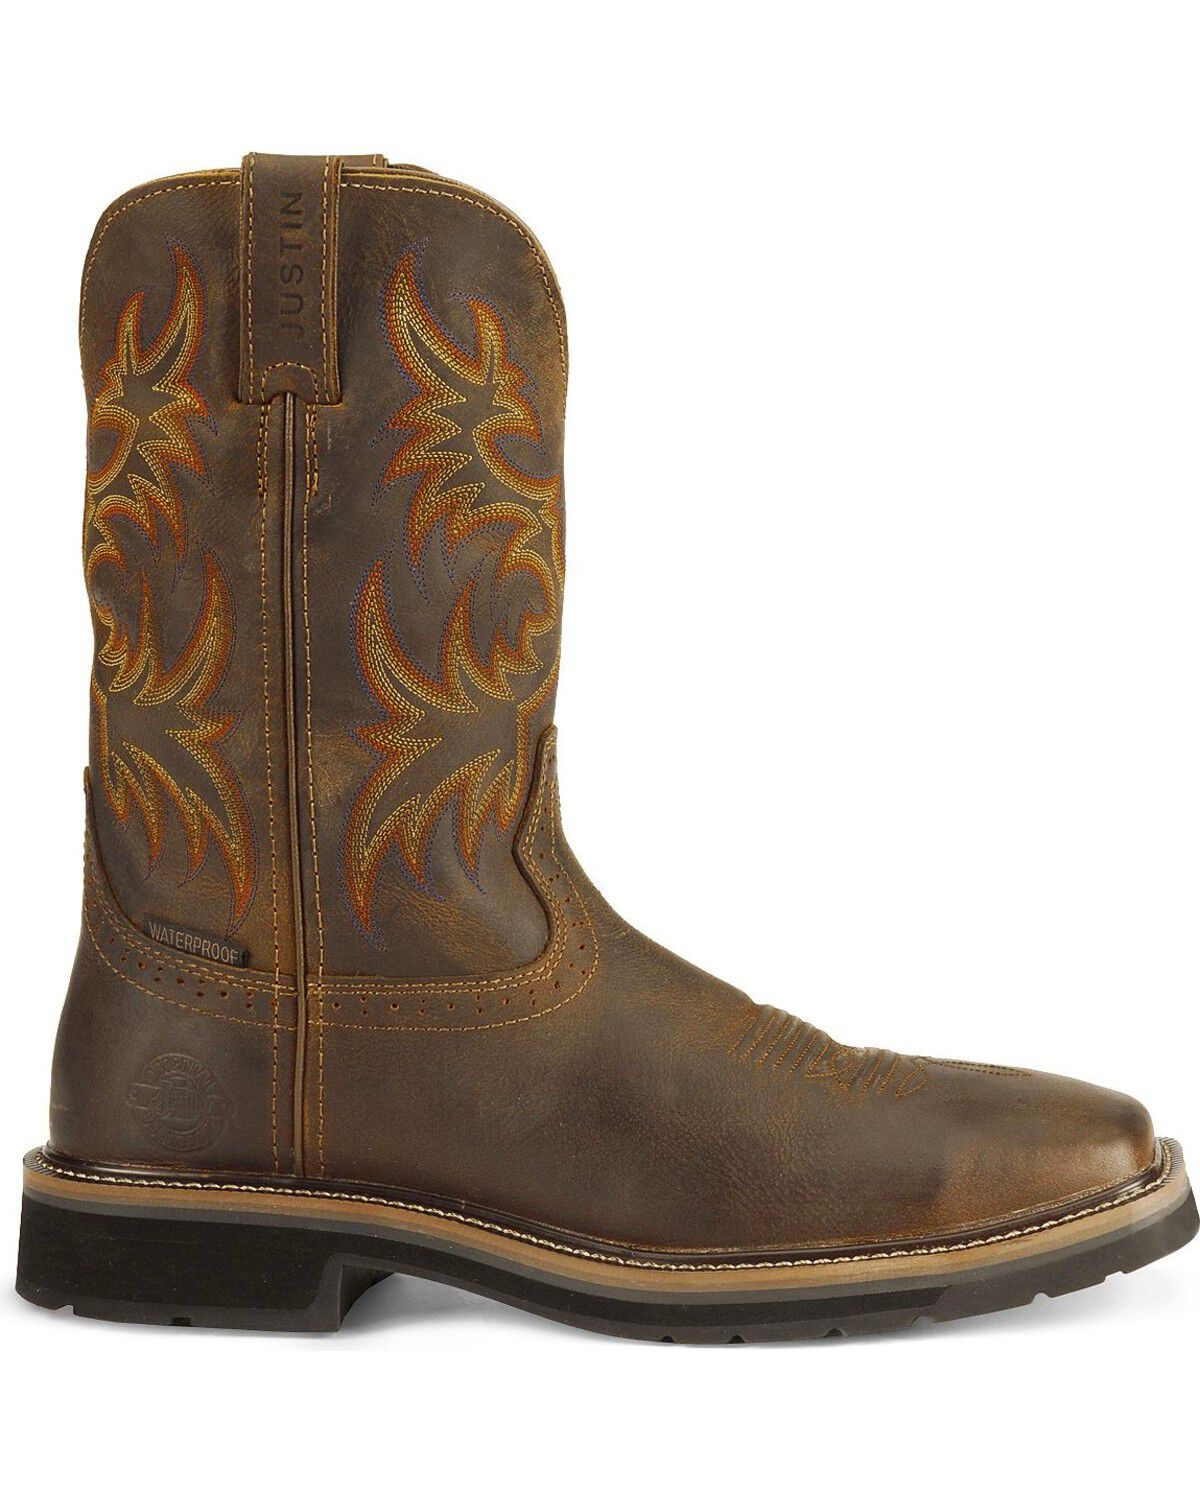 men's justin work boots on sale